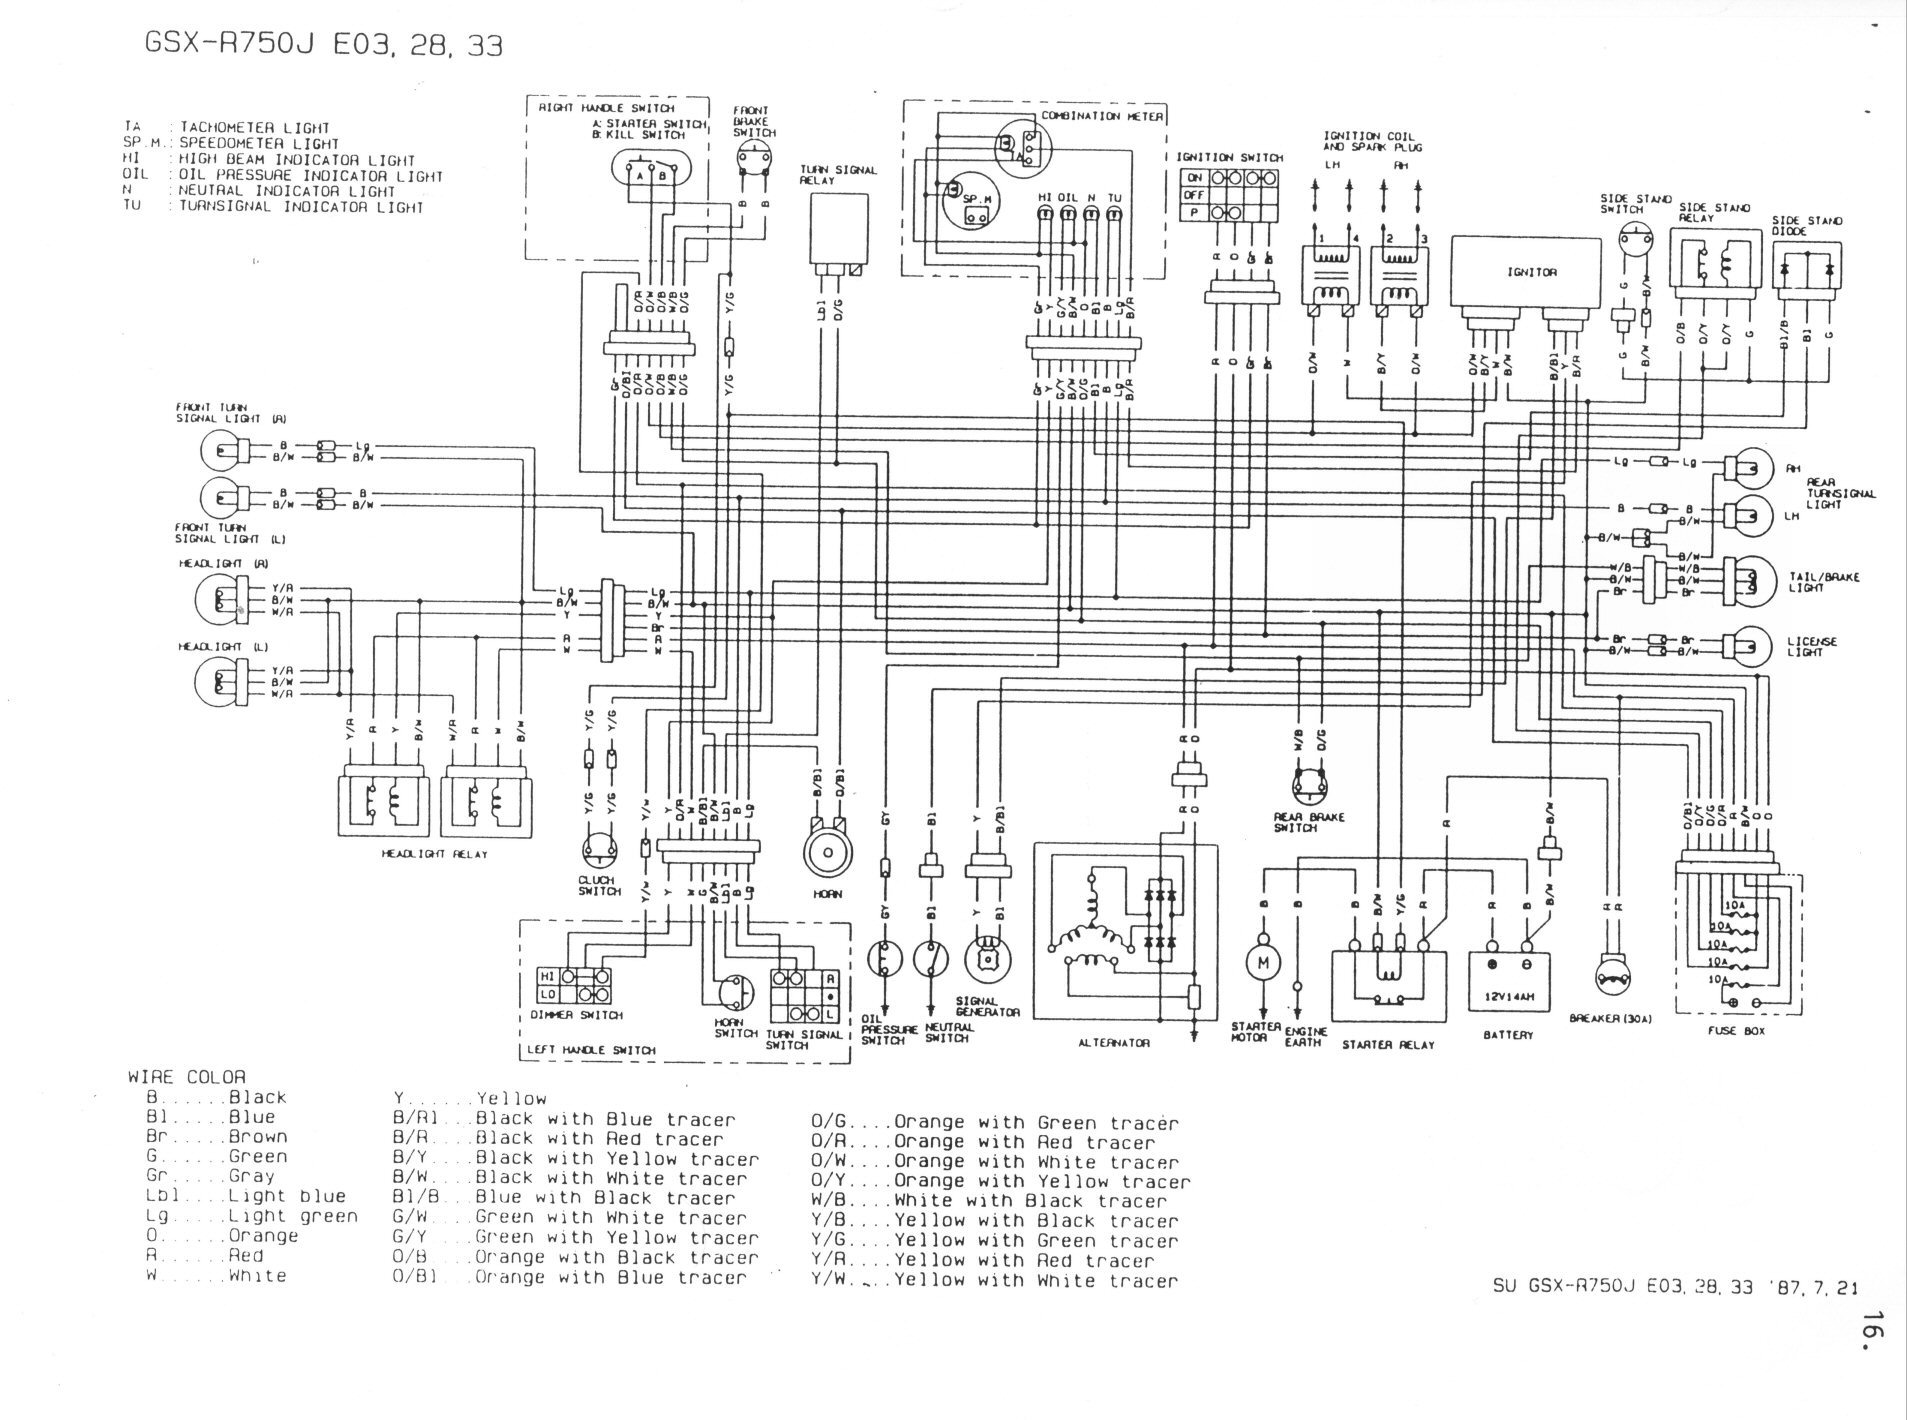 Diagram 1992 Suzuki Gsxr 750 Wiring Diagram Full Version Hd Quality Wiring Diagram Lightyien Compete Edilgress It